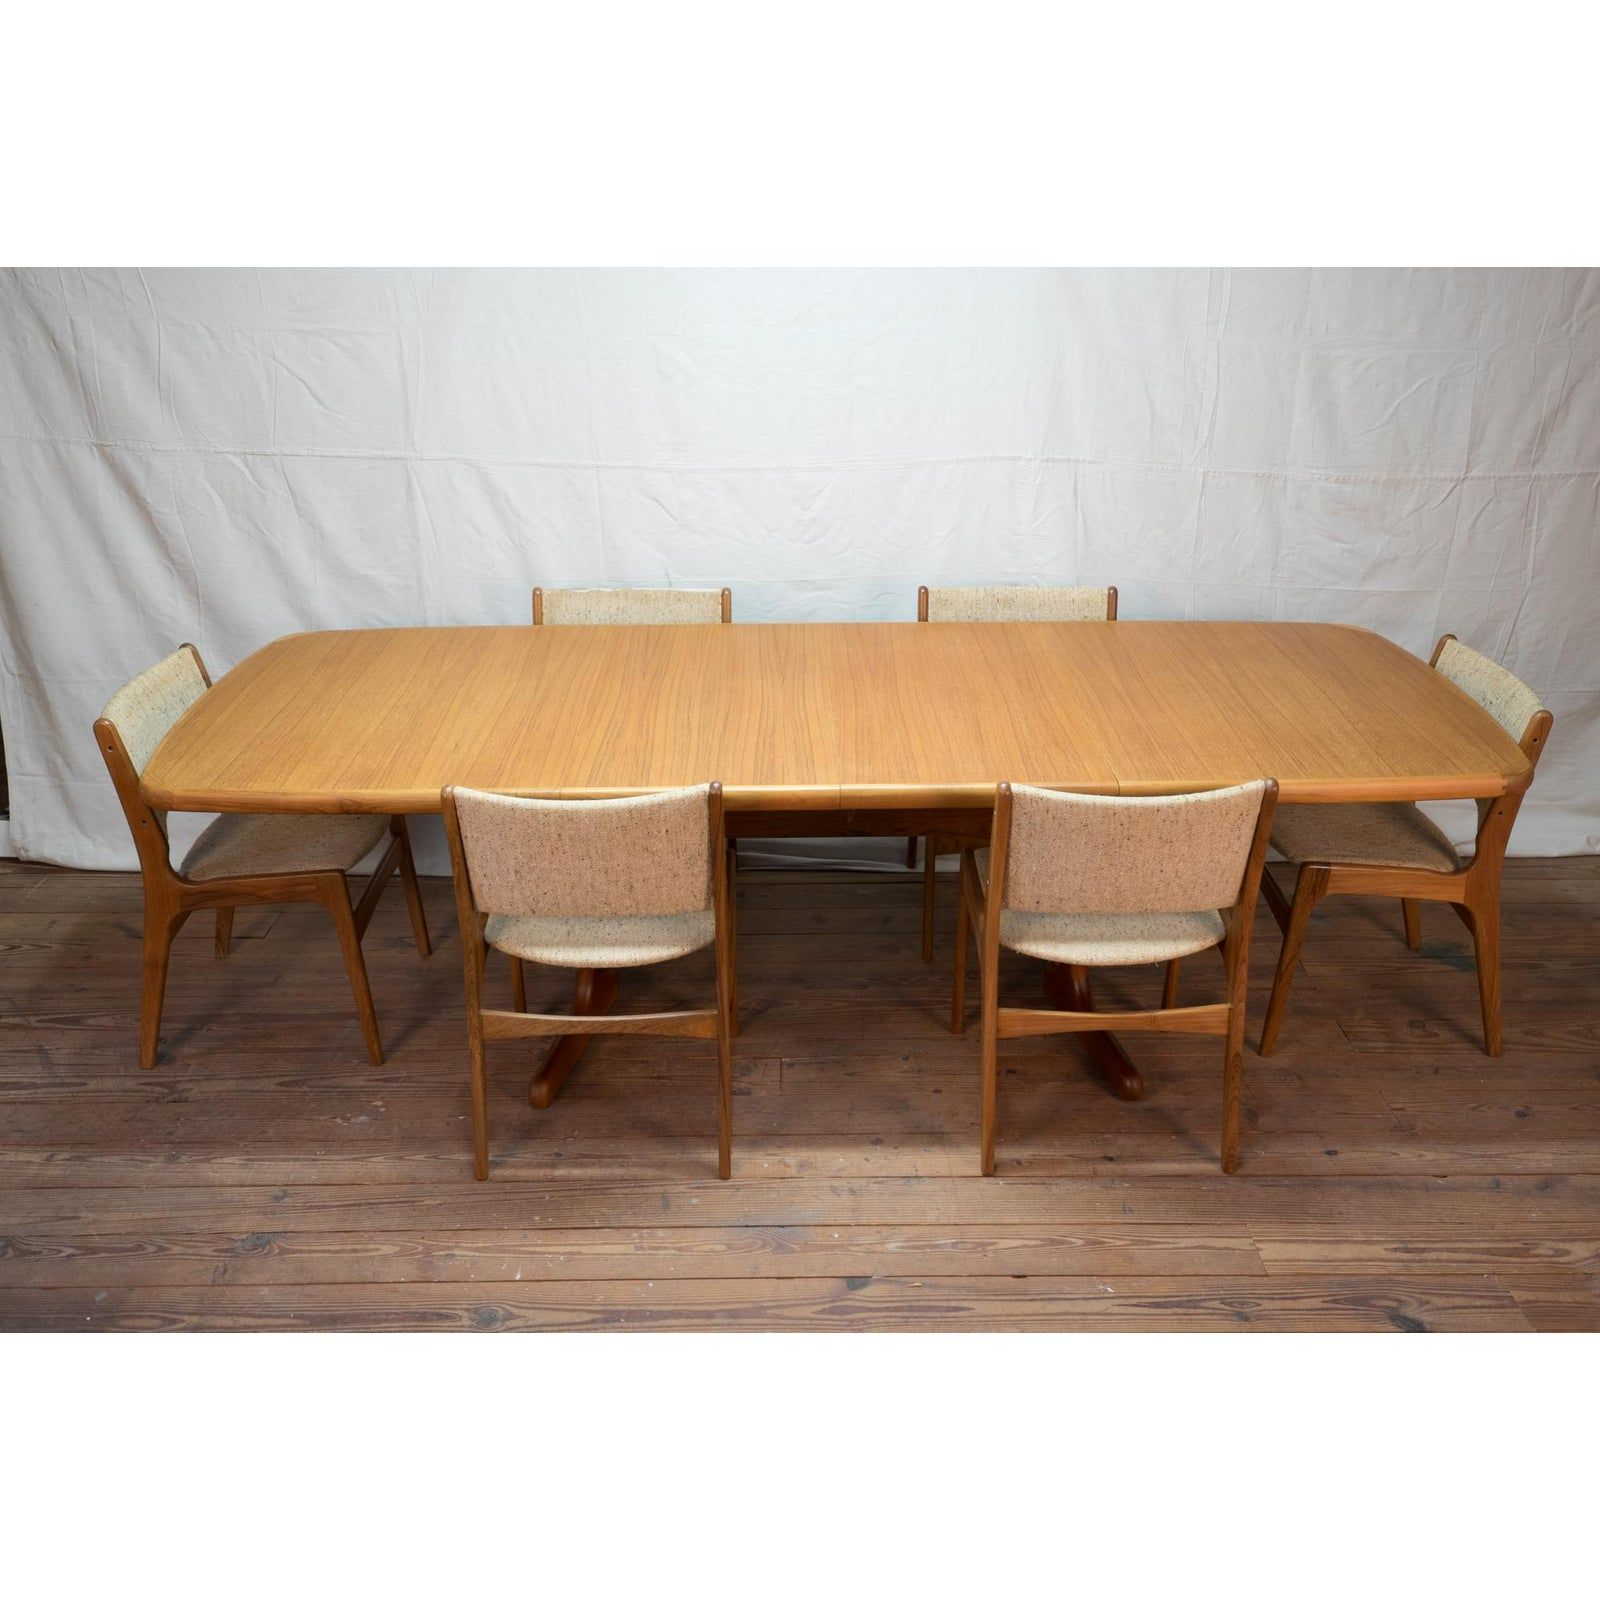 Danish Mid Century Modern Am Mobler Teak Dining Table And Six Erik Buch Chairs Chairish Dining Table Modern Conference Table Teak Dining Table